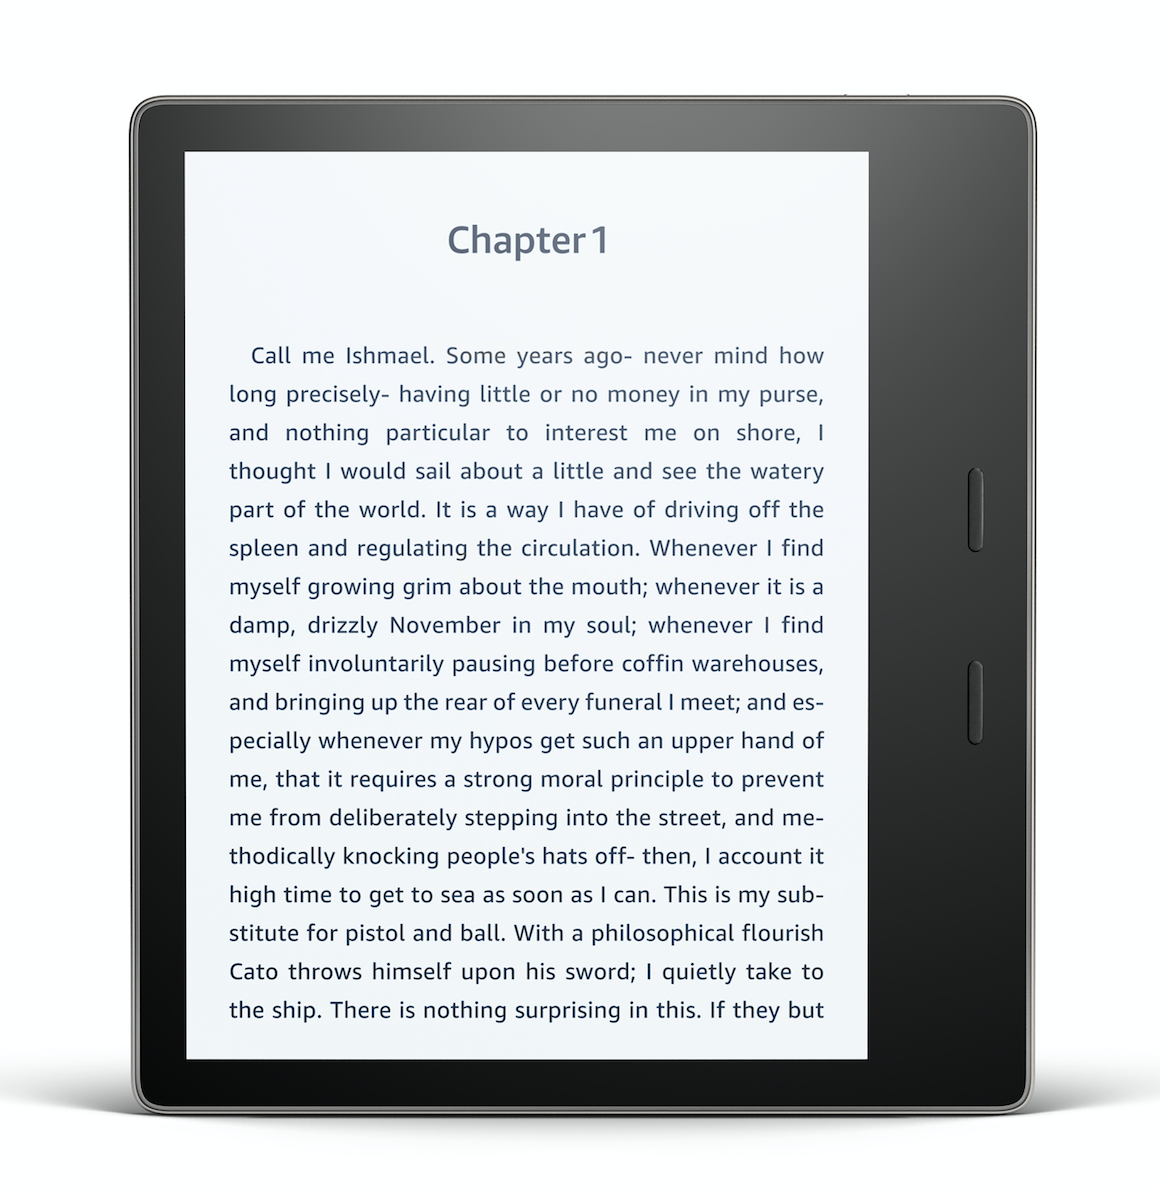 Amazon Kindle Oasis Waterproof Ebook Reader Launched in India: Price, Release Date